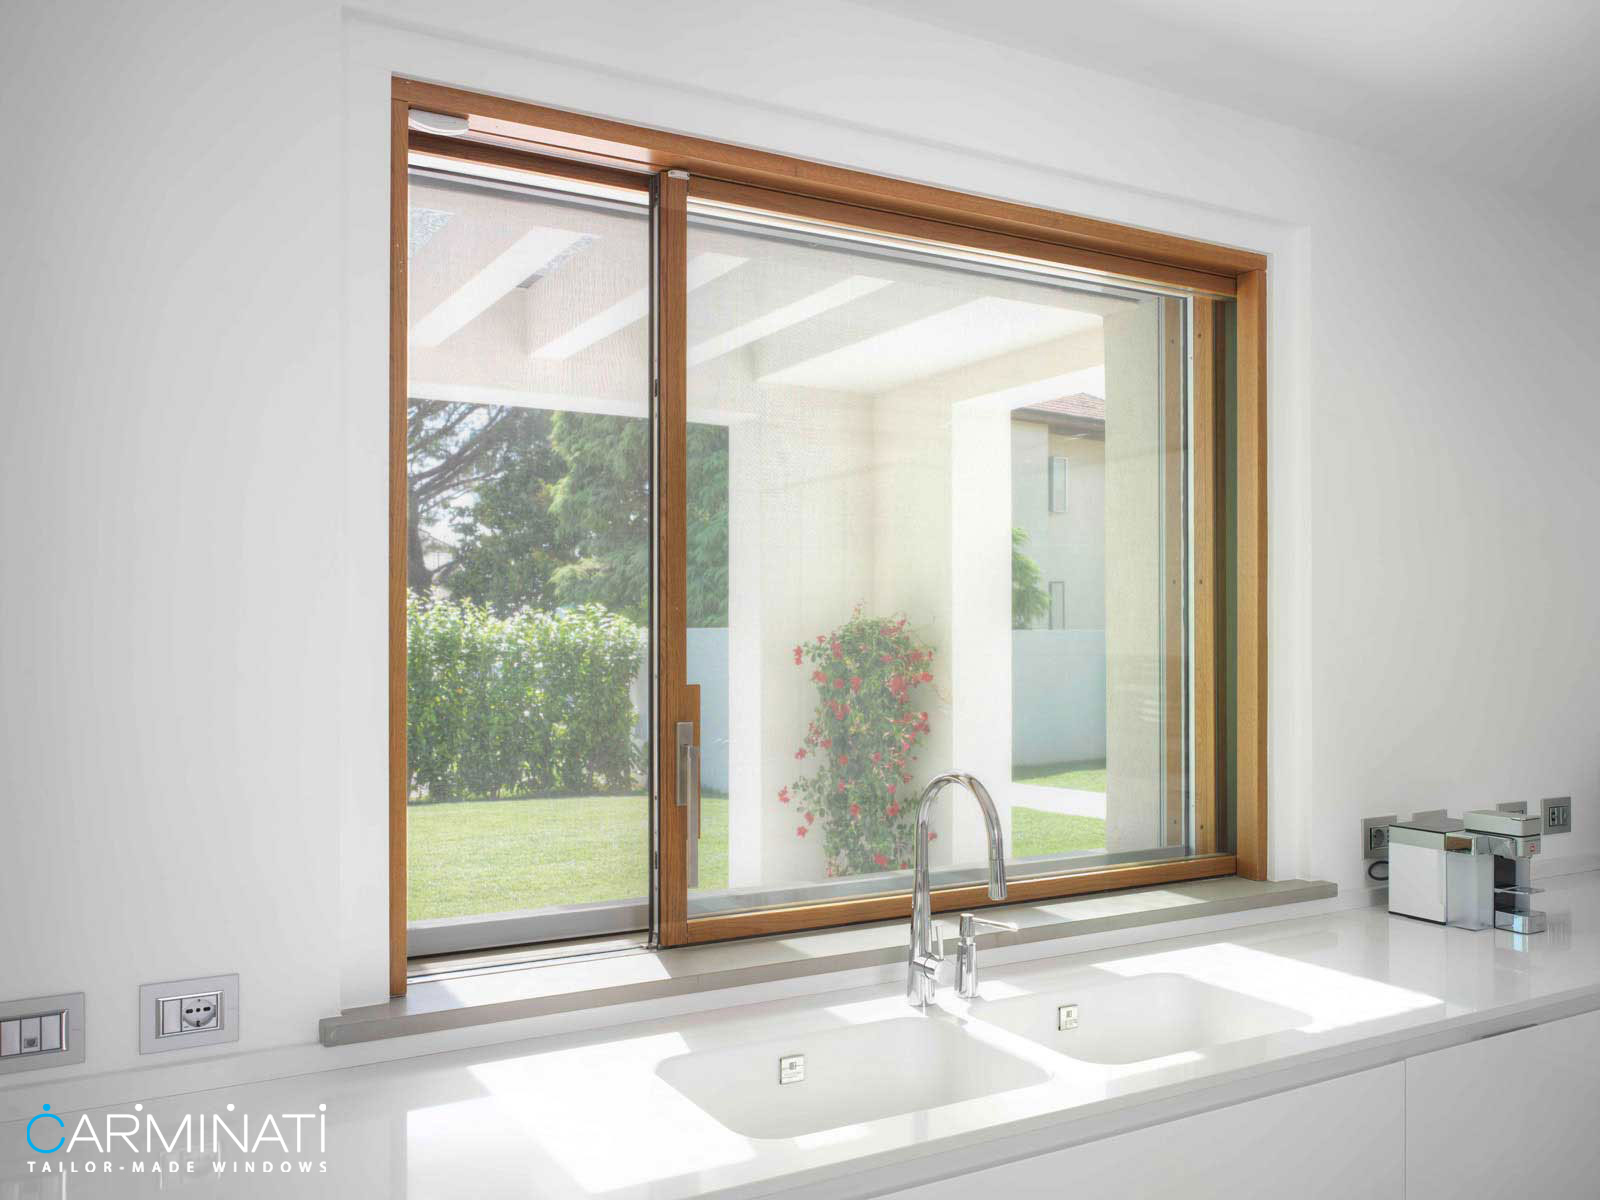 A Skyline minimal frame sliding window in a kitchen from Carminati Serramenti